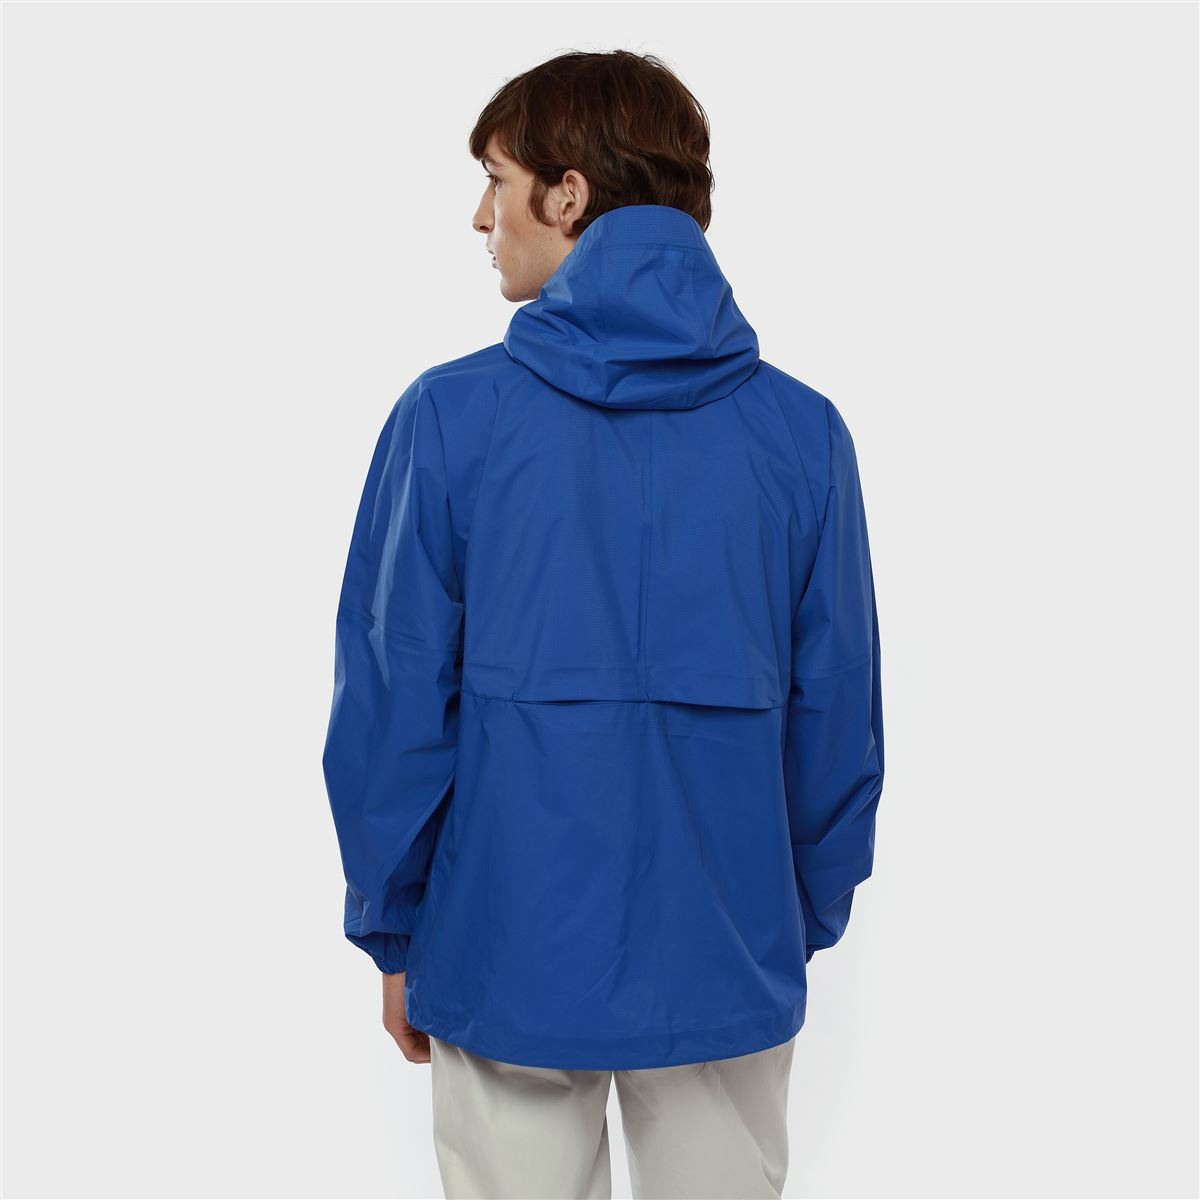 Le Vrai Amiable Claude 2.1 Recycled Unisex in 741 Blue Royal Jackets.